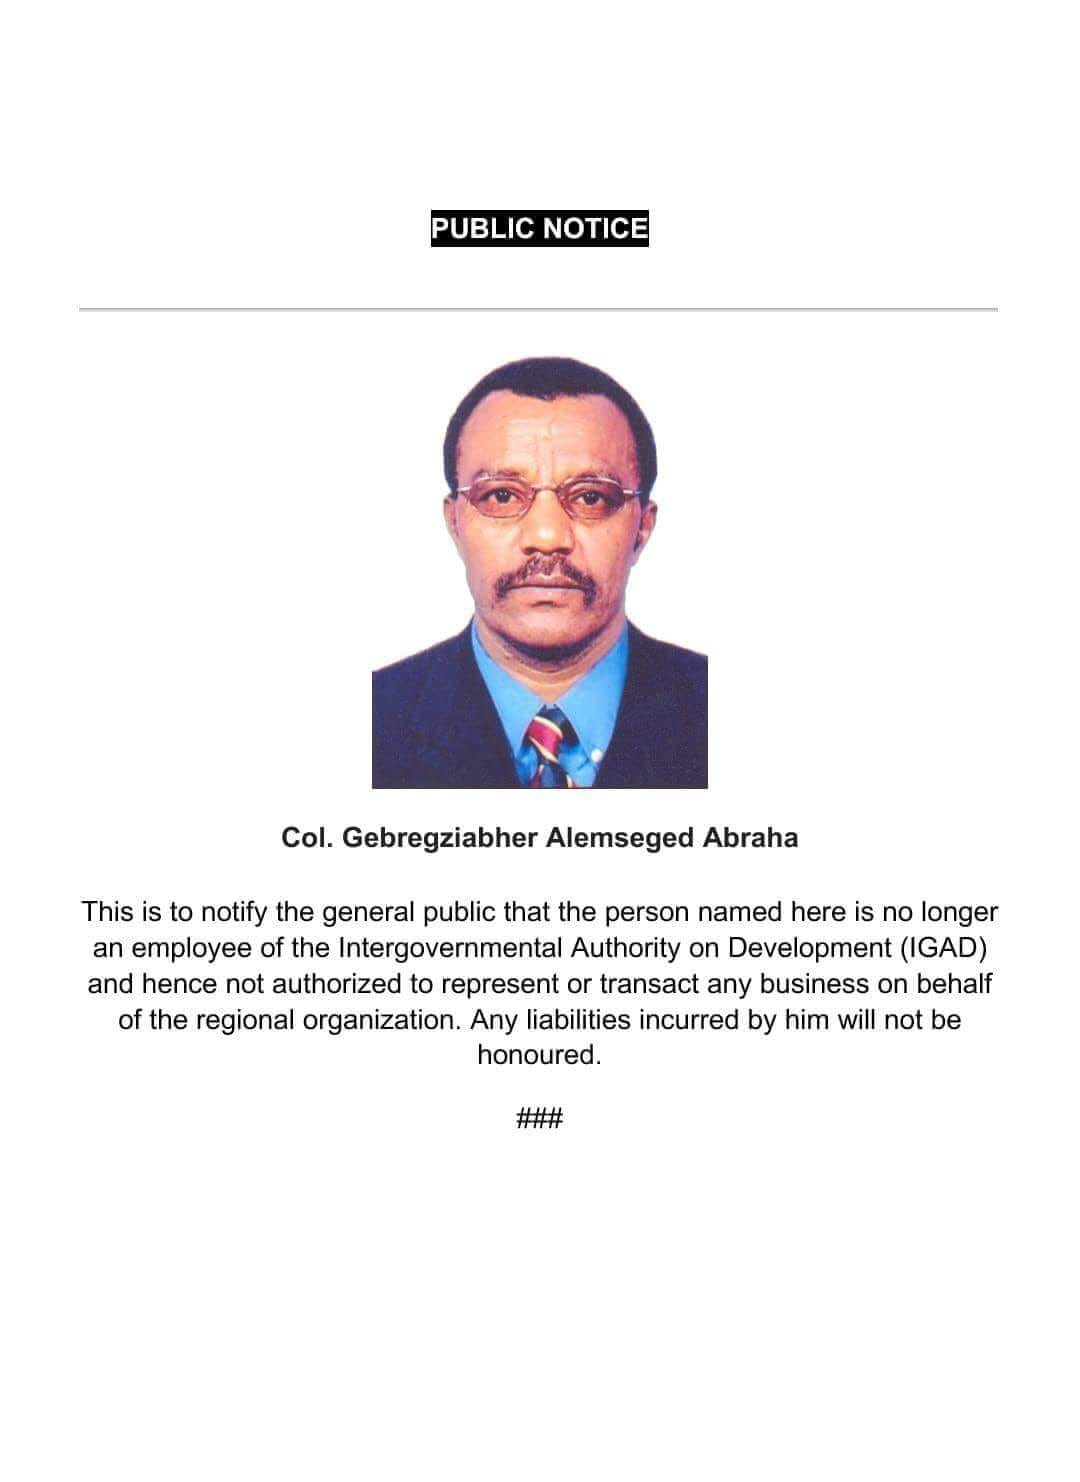 Somalia: Col. Gebre of Ethiopian Intelligence Service Terminated and PUBLIC NOTICE Issued